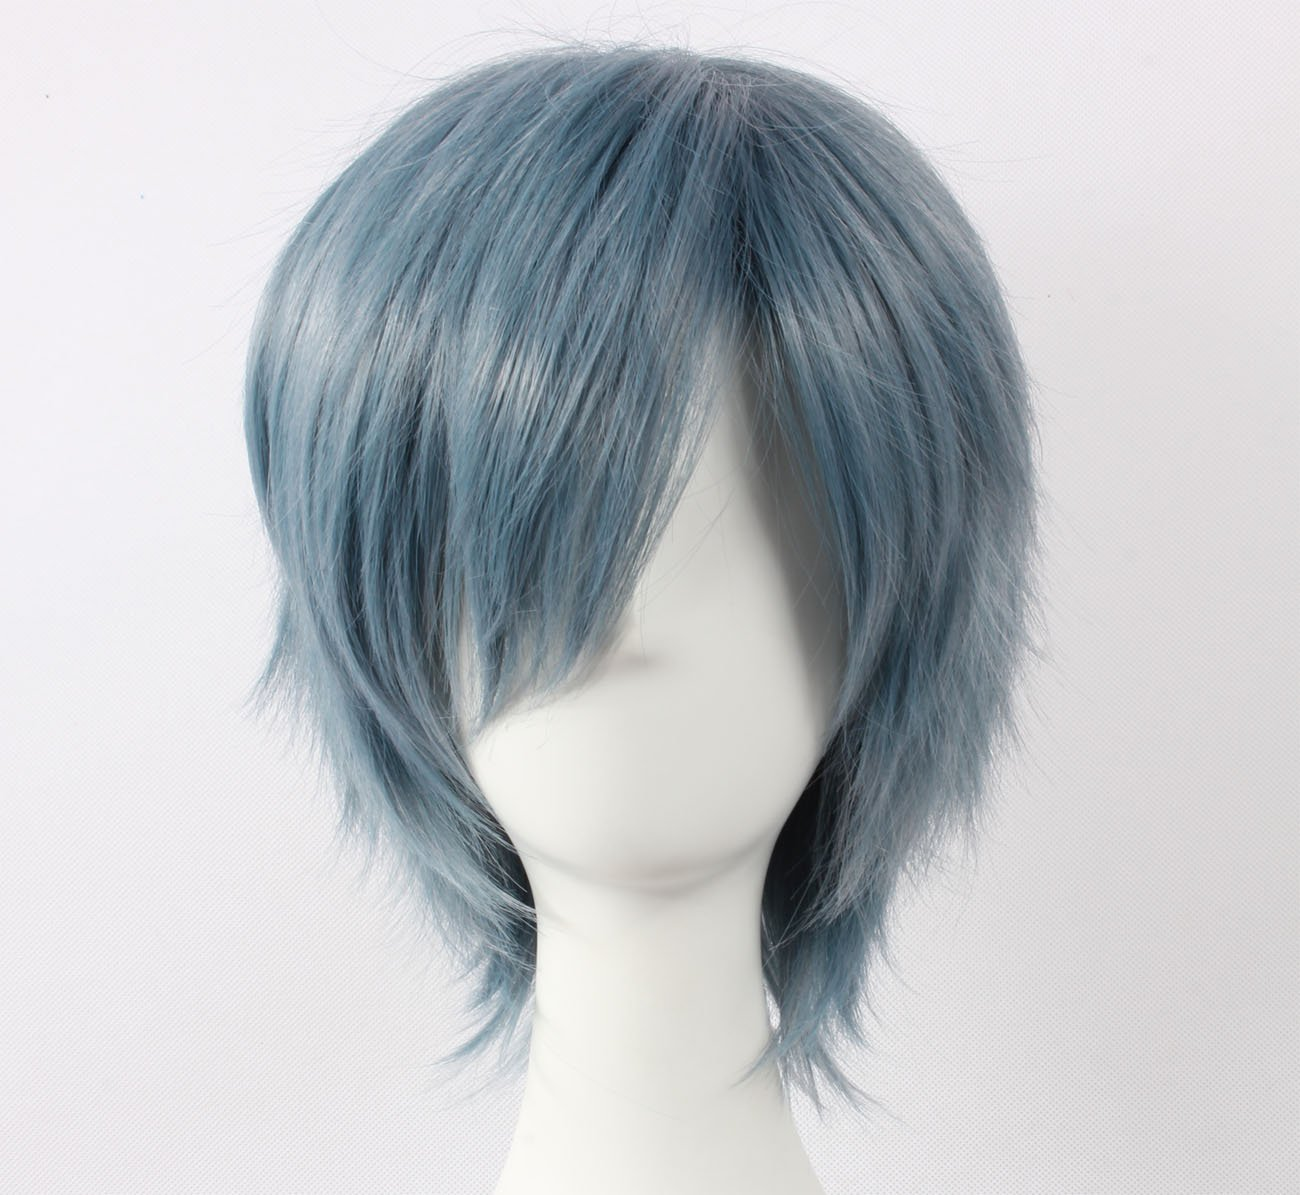 Coolsky Wig Dark Blue Wig Short Dark Blue Straight Wig Wigs